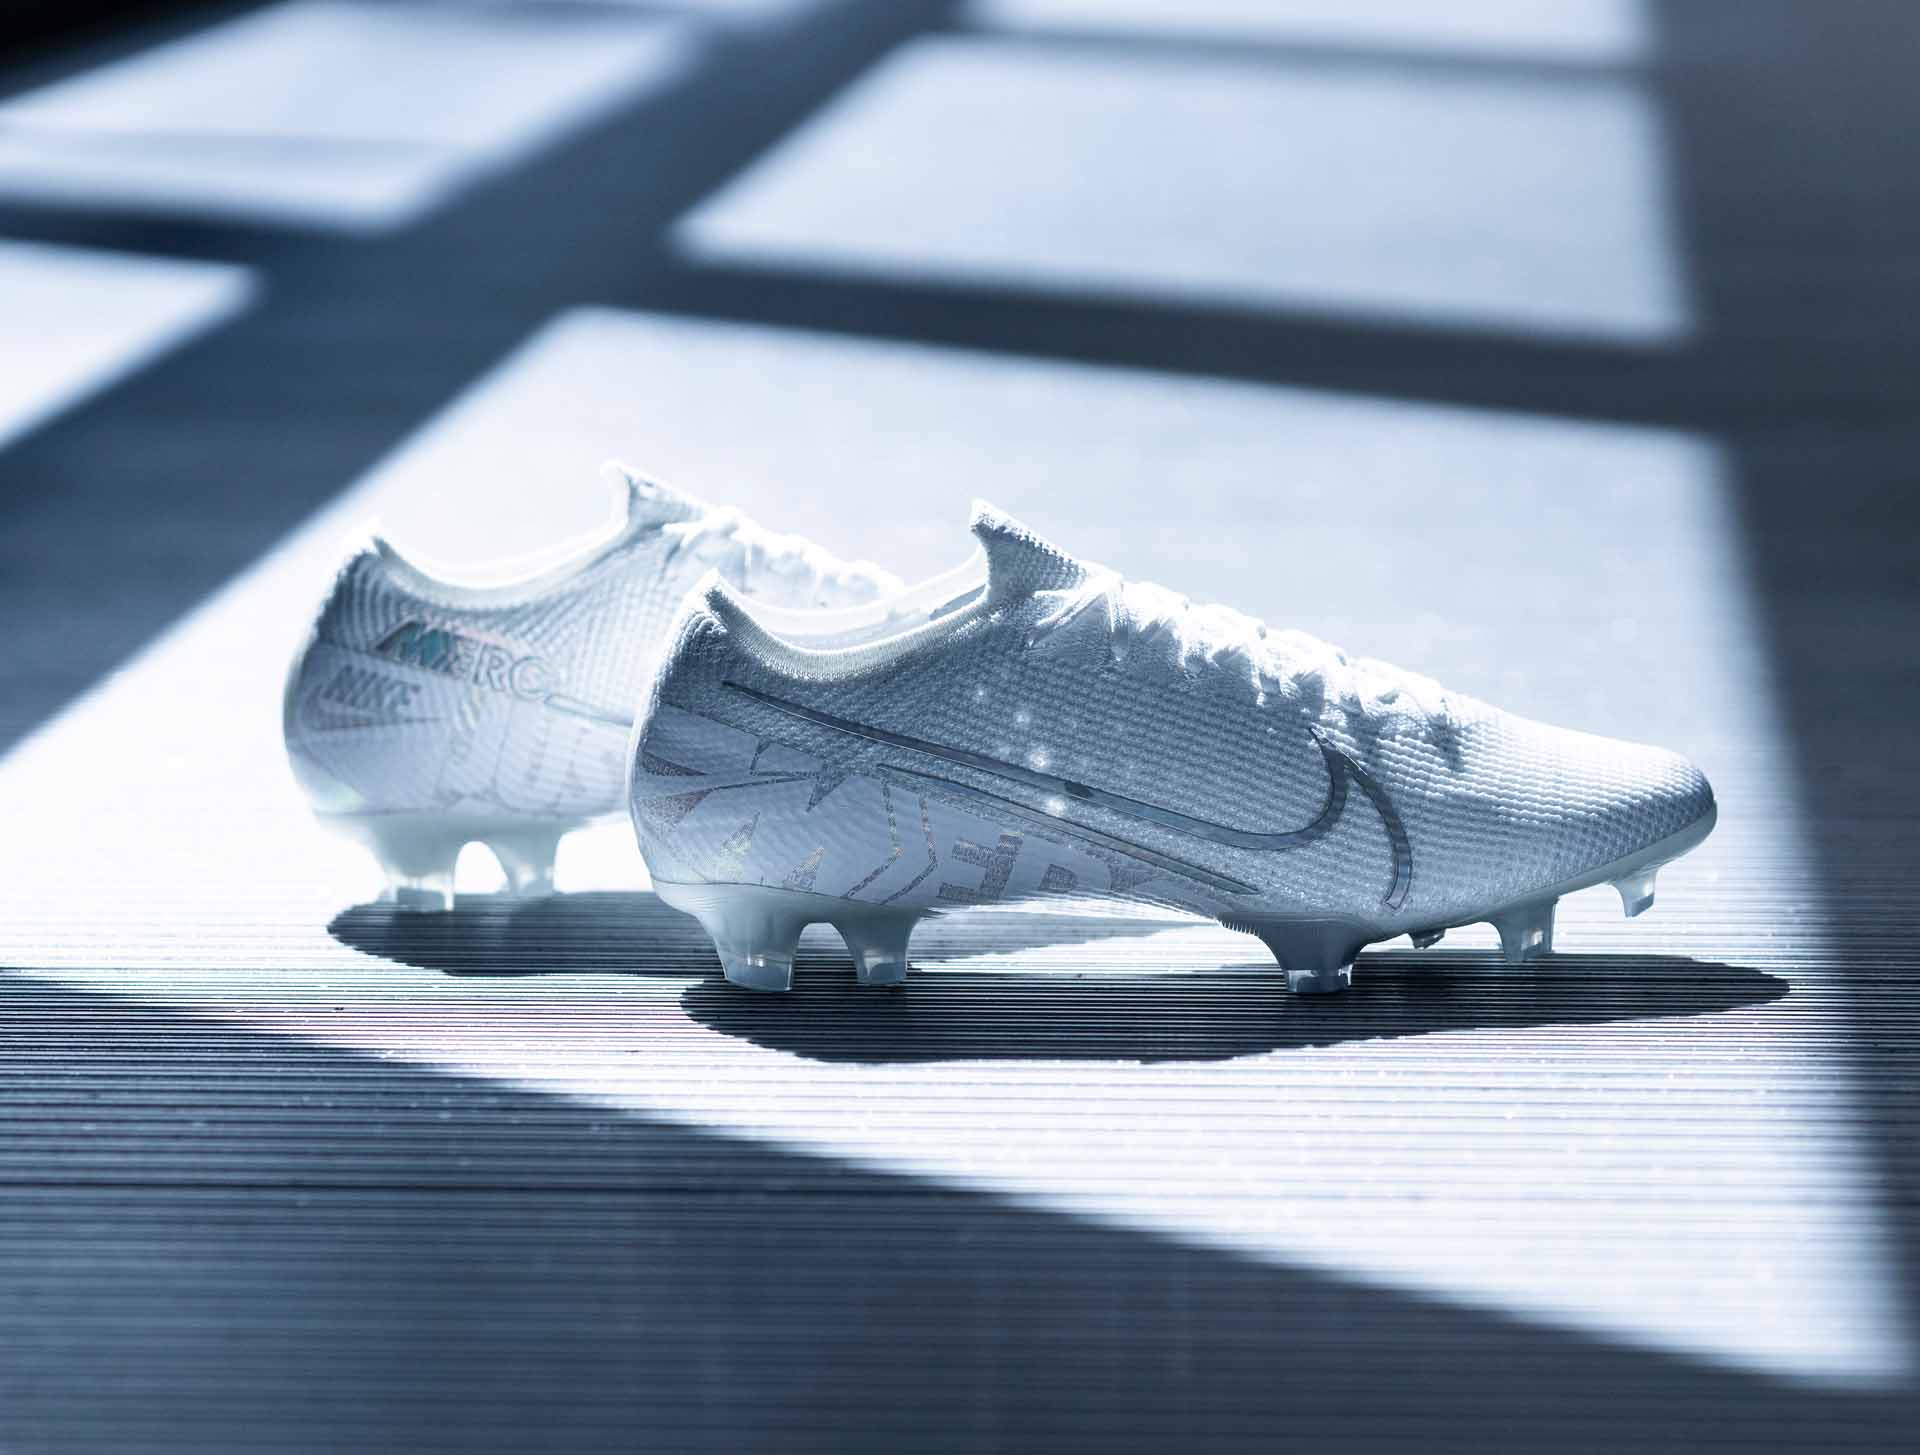 plus récent 6ee3a 157d9 Nike Launch The 'Nuovo White Pack' Football Boots - SoccerBible